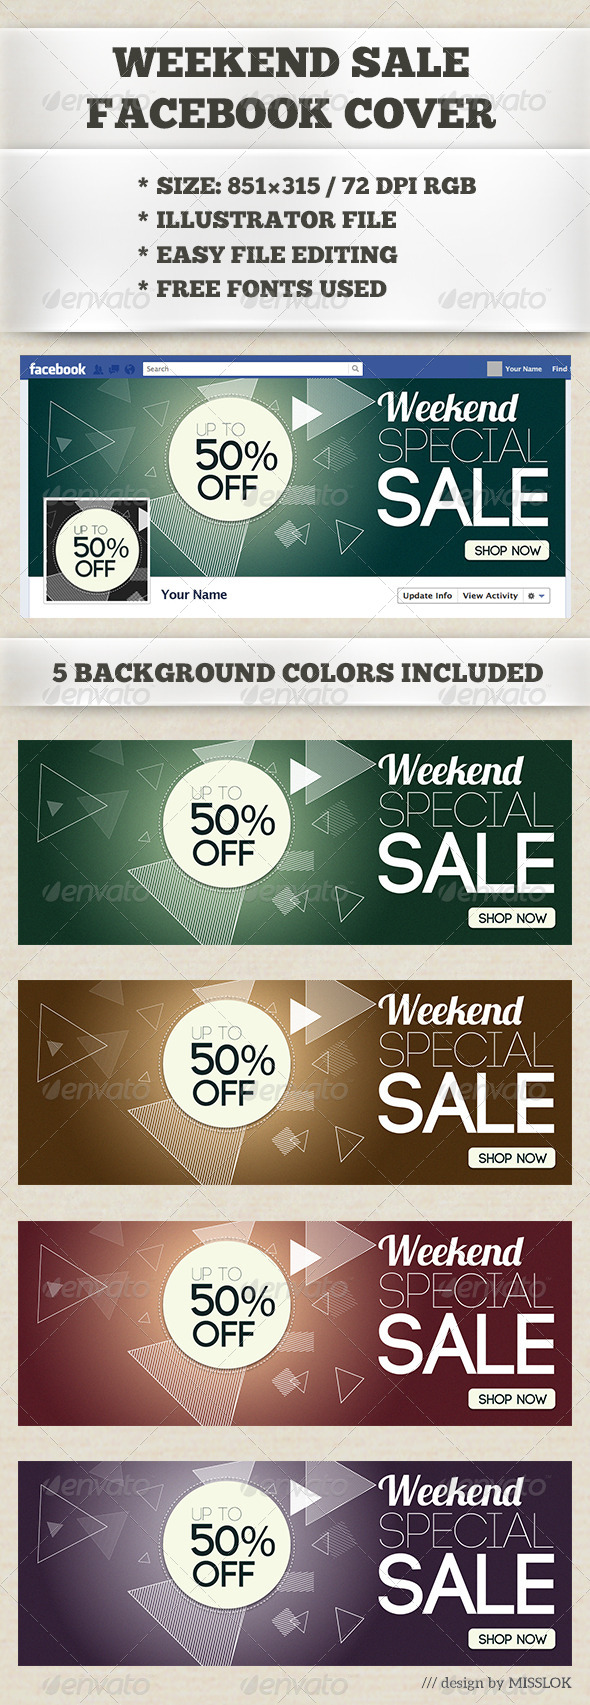 GraphicRiver Weekend Sale Facebook Cover 6890778